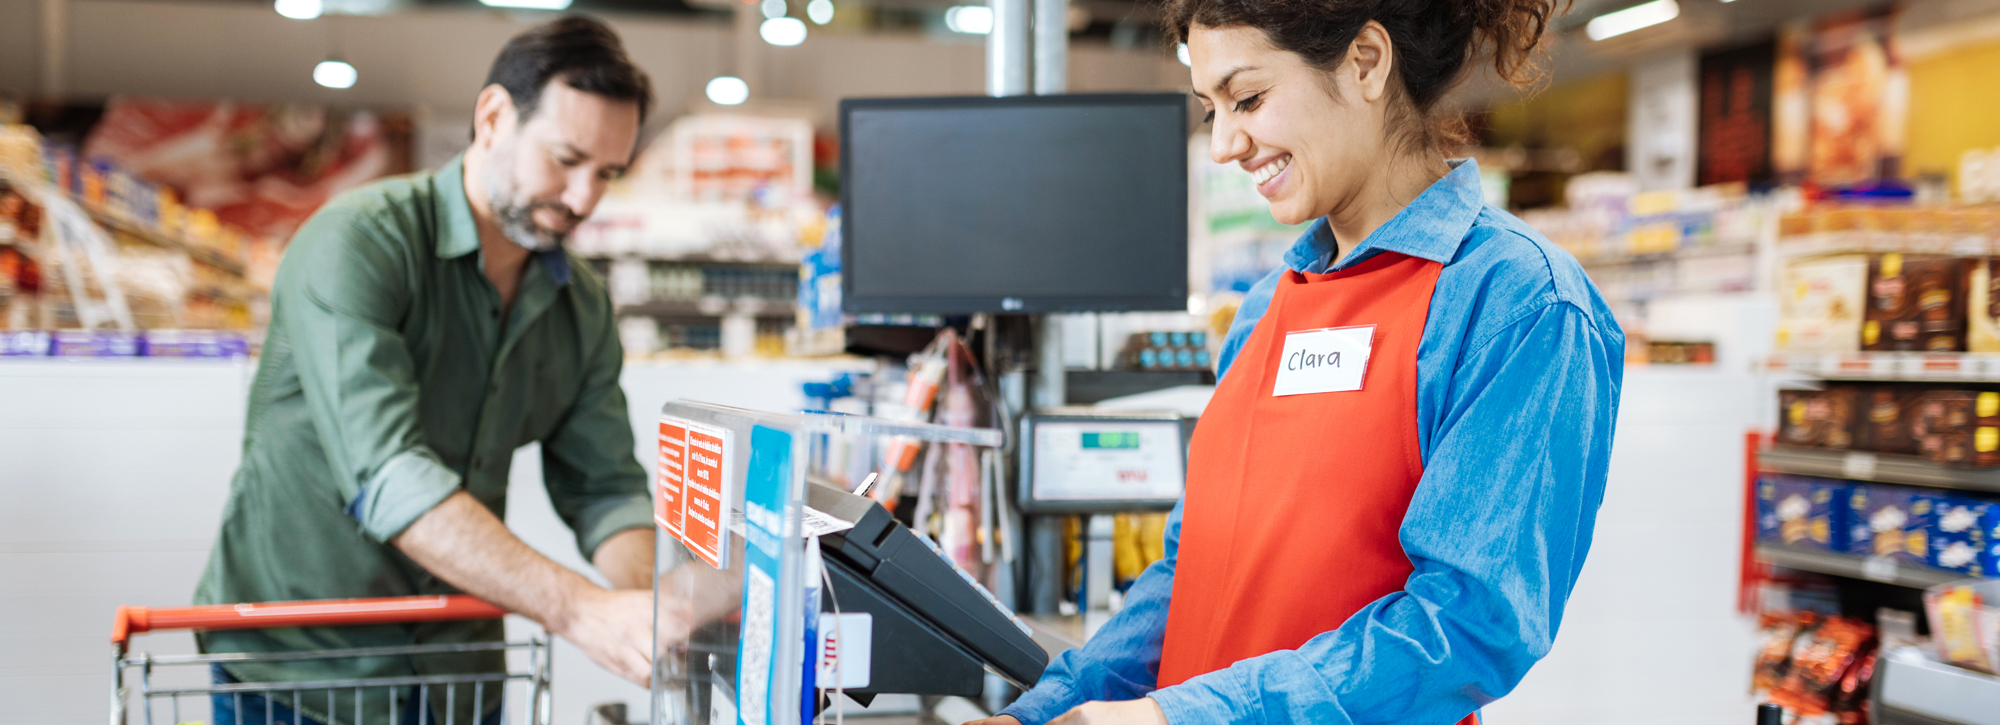 cashier at register with customer